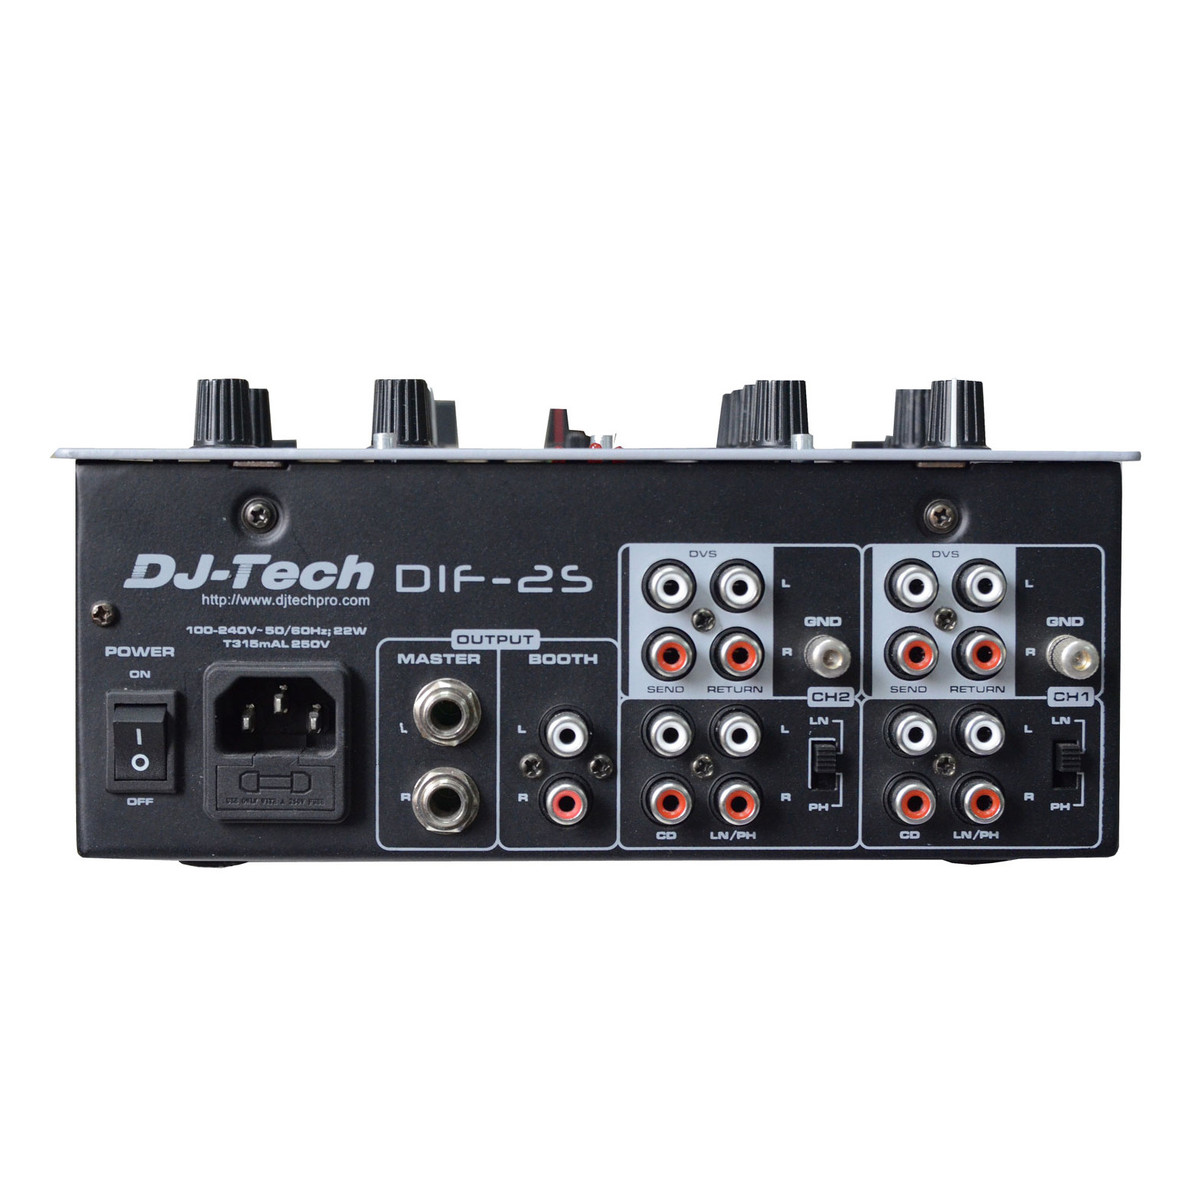 Dj Tech Dif 2s 2 Channel Scratch Mixer Black At Gear4music Stereo For Microphone With Channels Loading Zoom